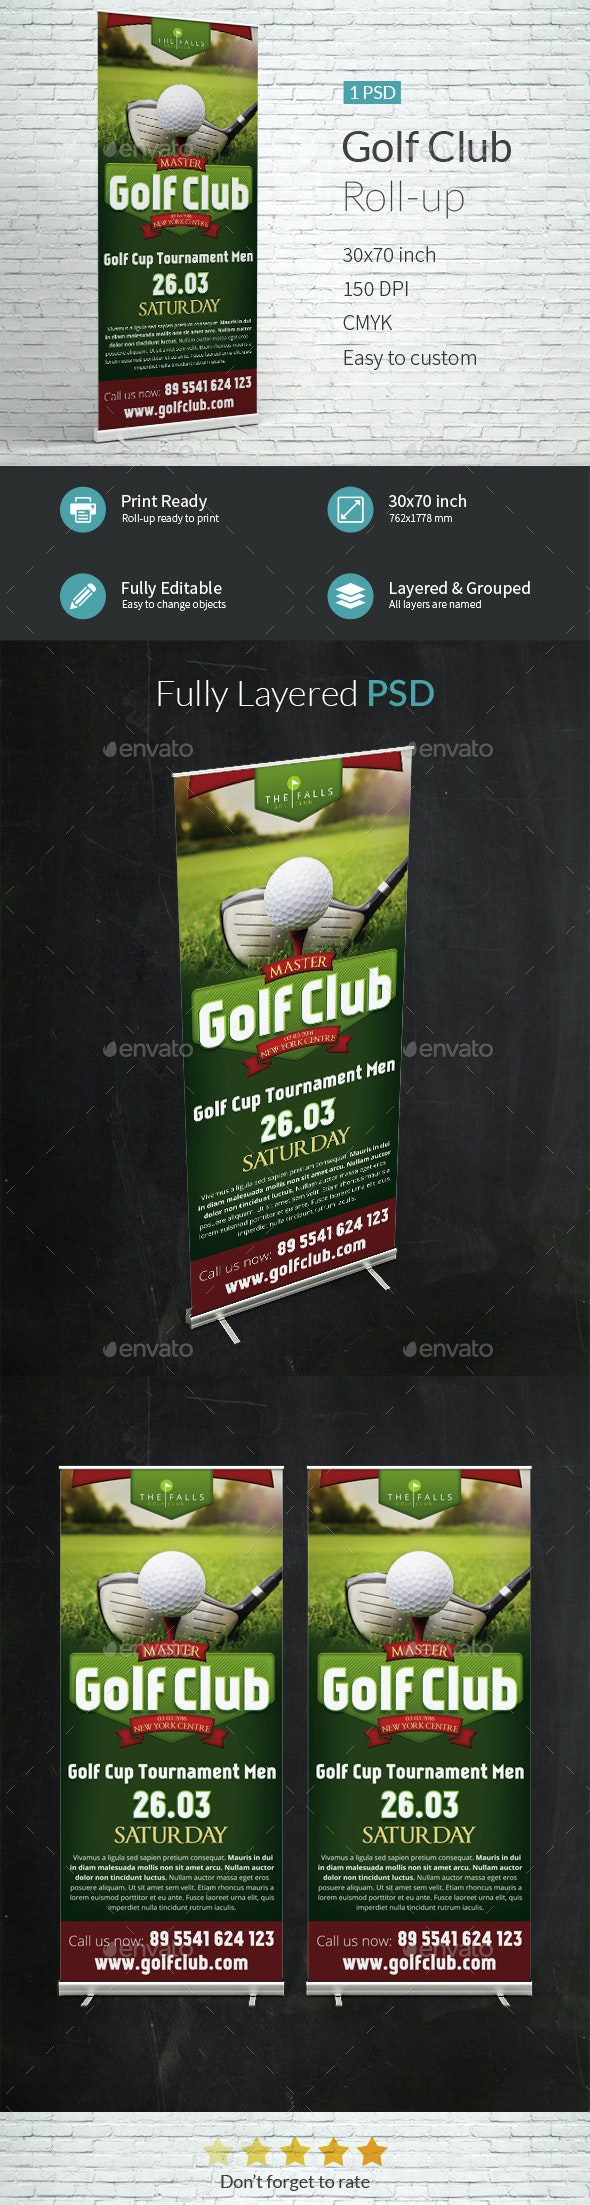 Golf Club Roll-up Template - Signage Print Templates